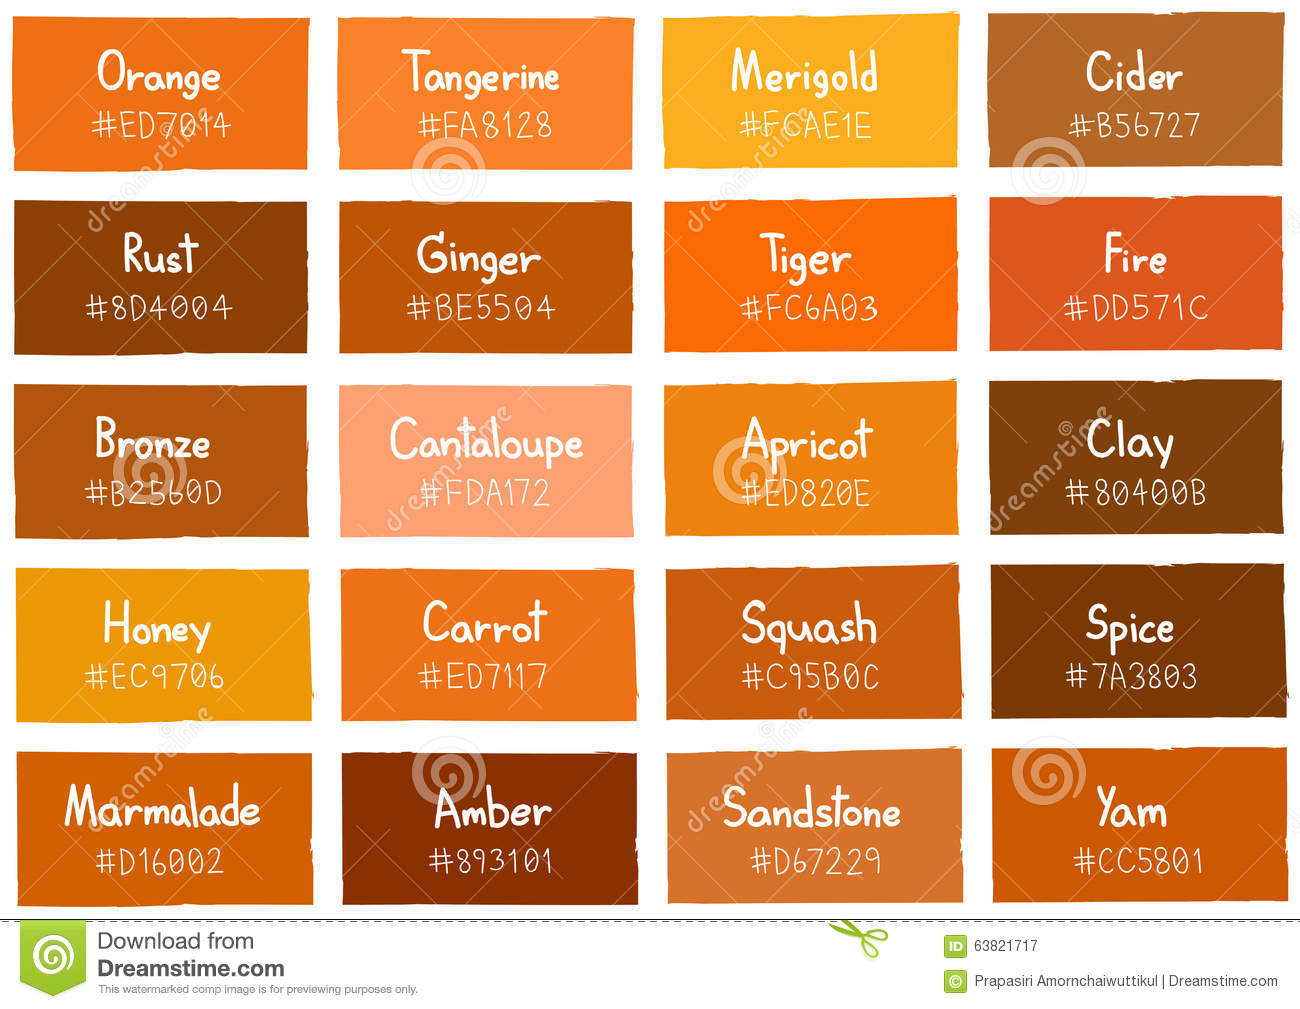 Orange Tone Color Shade Background With Code And Name